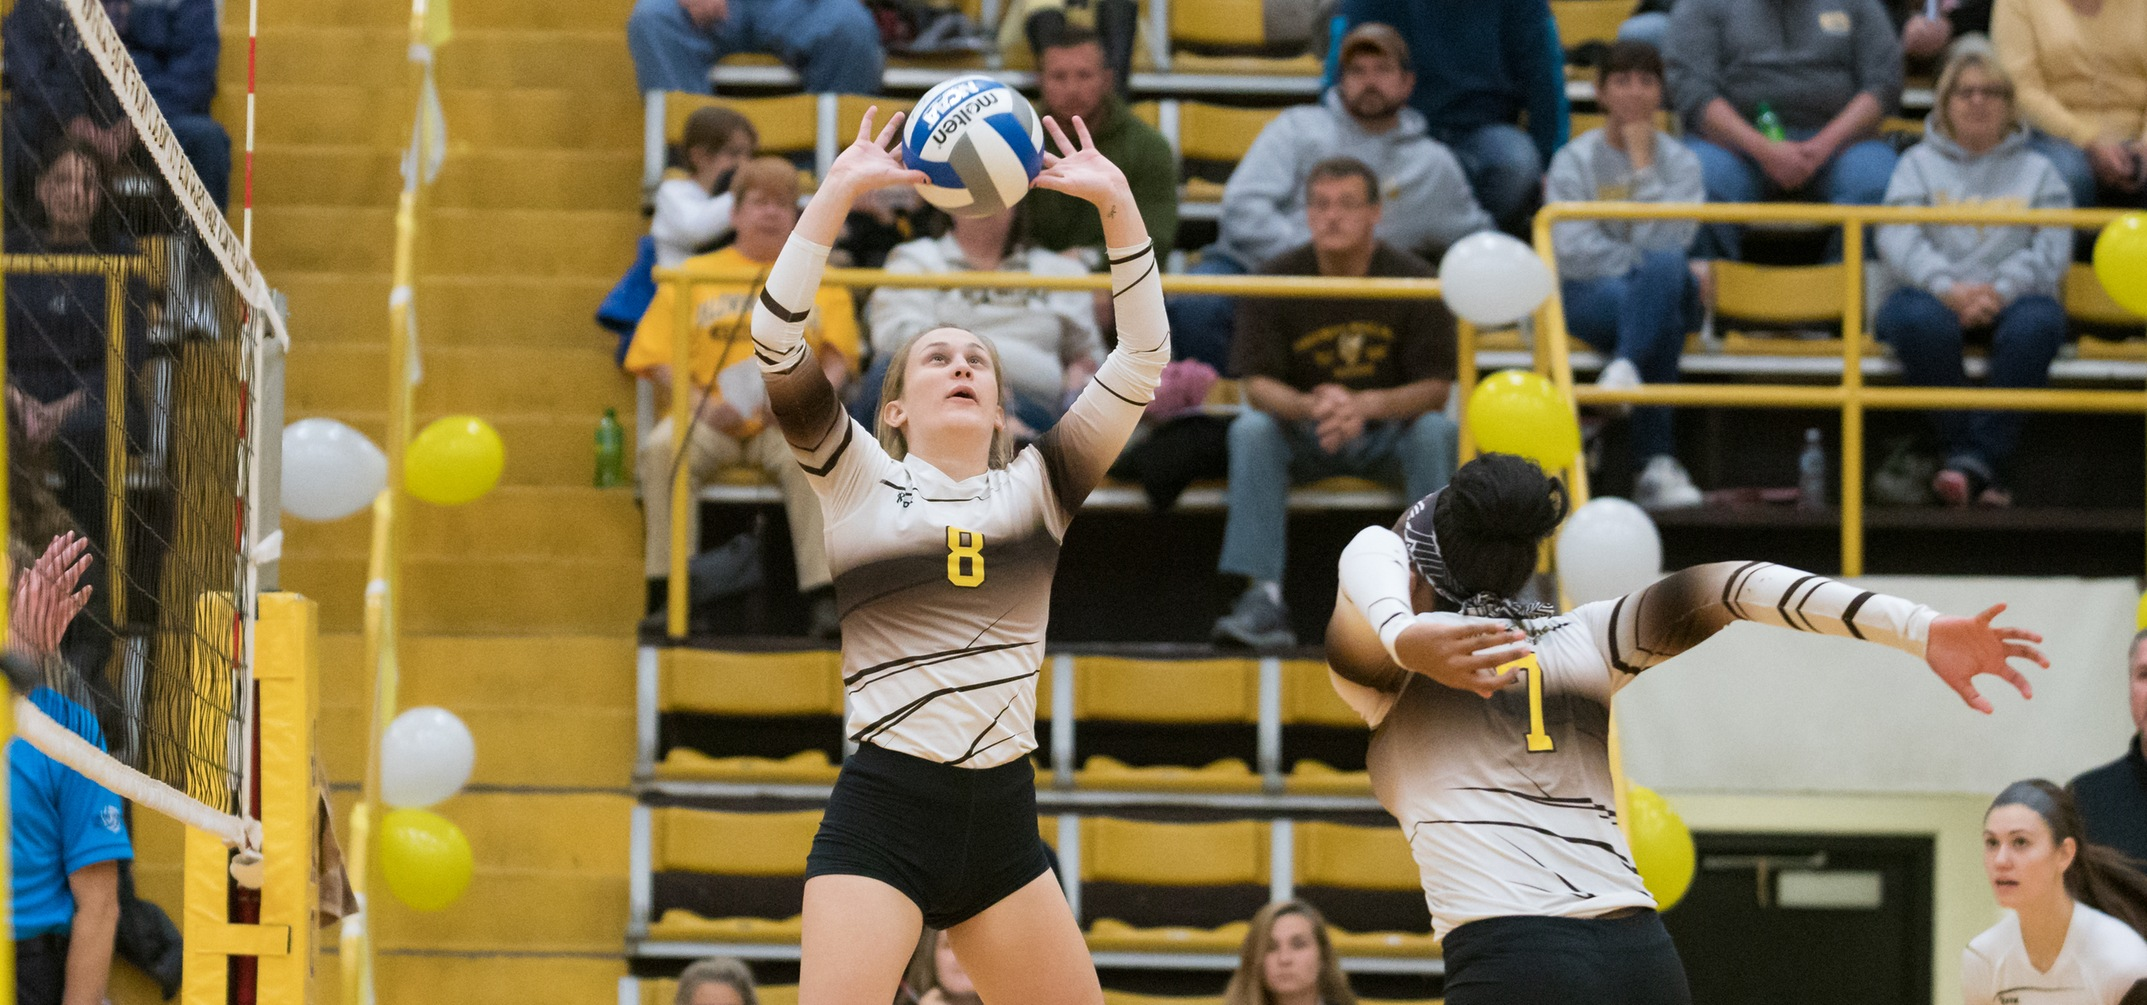 Junior setter Kathleen Egan was named to the All-Tournament team of the Blue Jay Classic